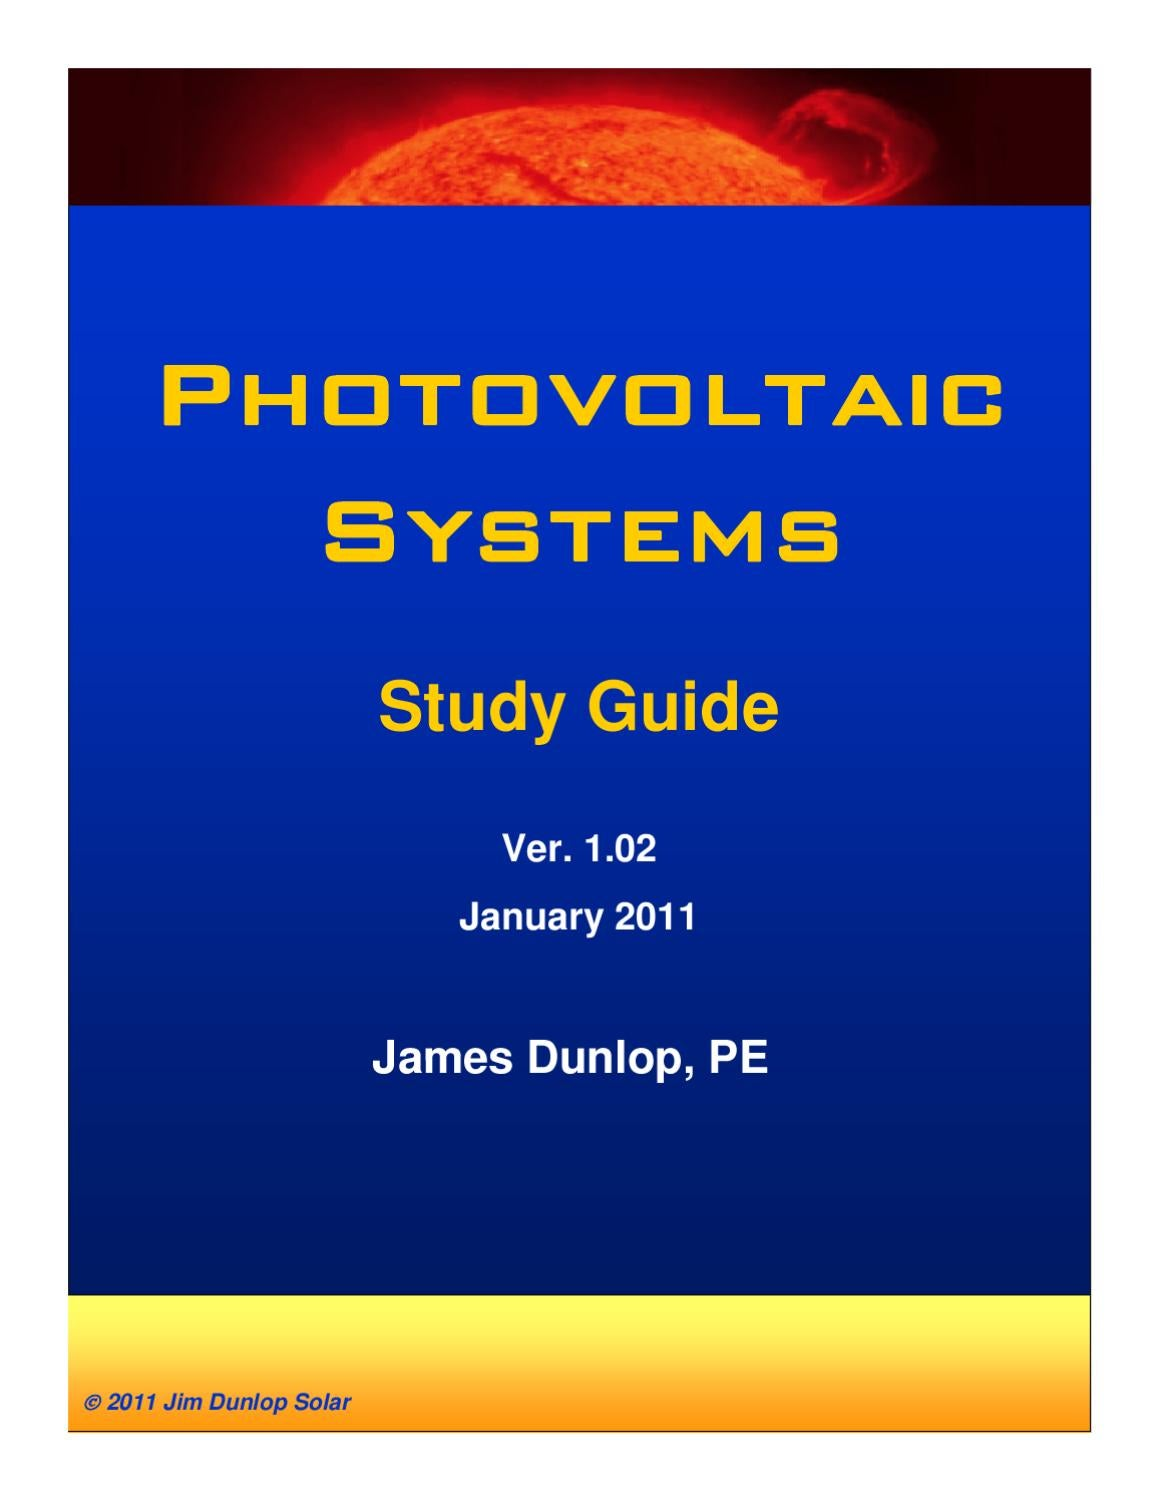 Photovoltaic systems by jim dunlap